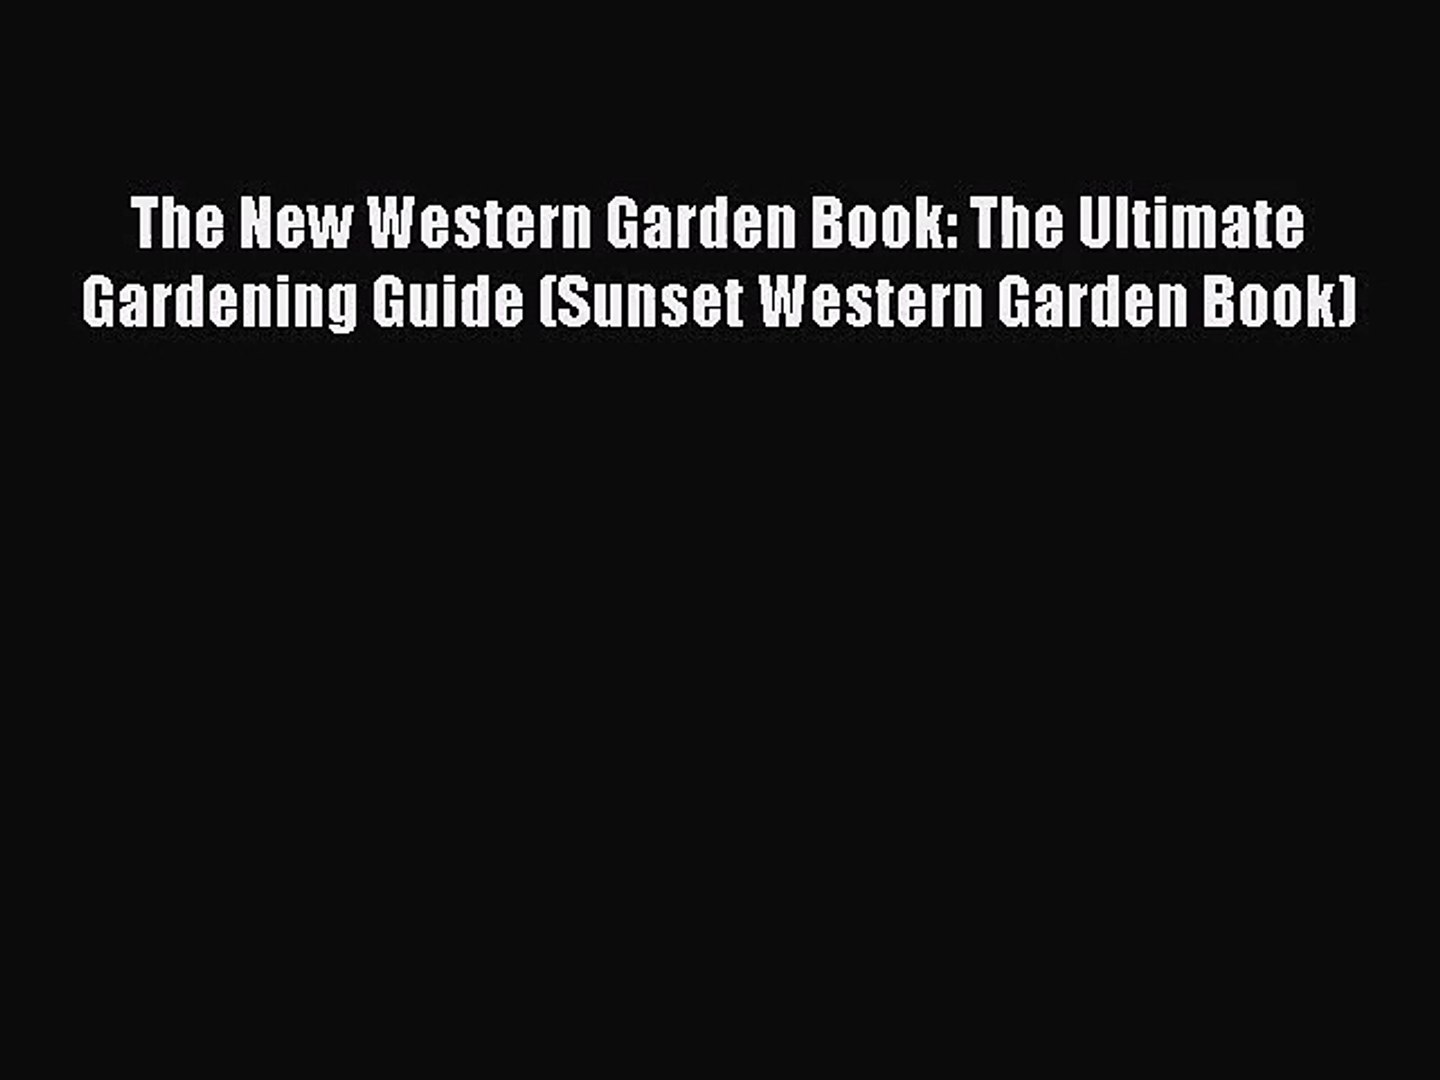 [PDF Download] The New Western Garden Book: The Ultimate Gardening Guide (Sunset Western Garden